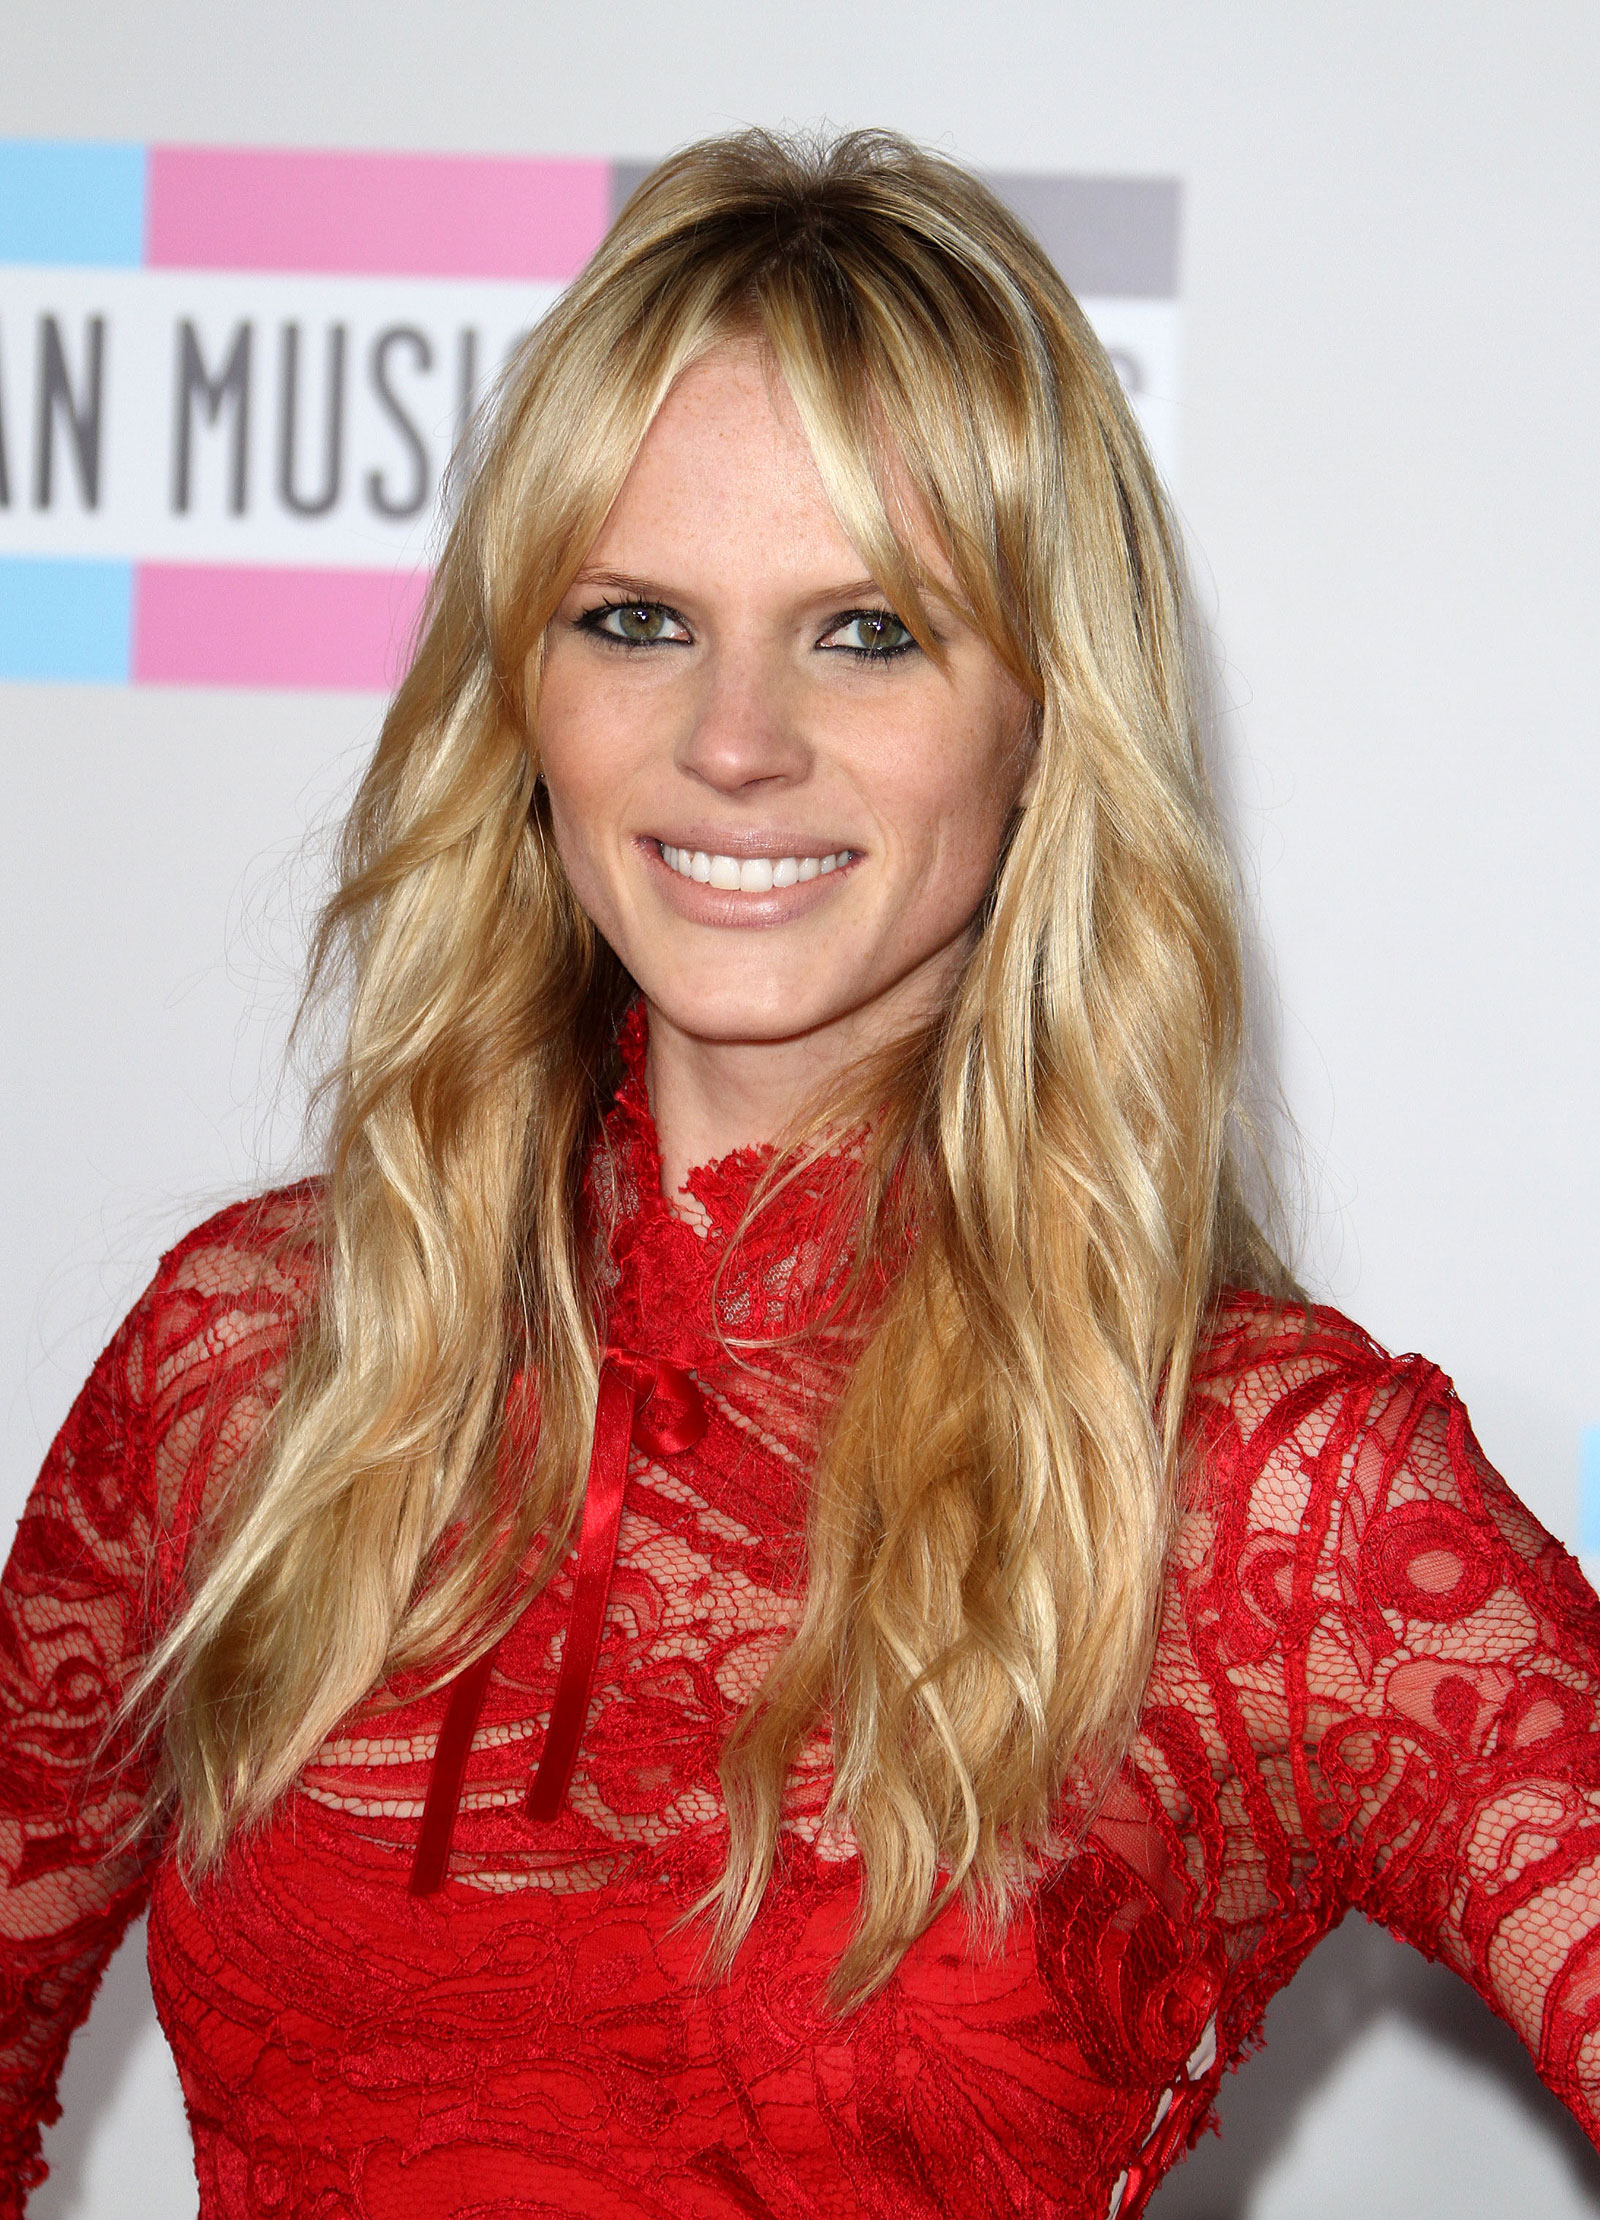 anne vyalitsyna and adam levine relationship